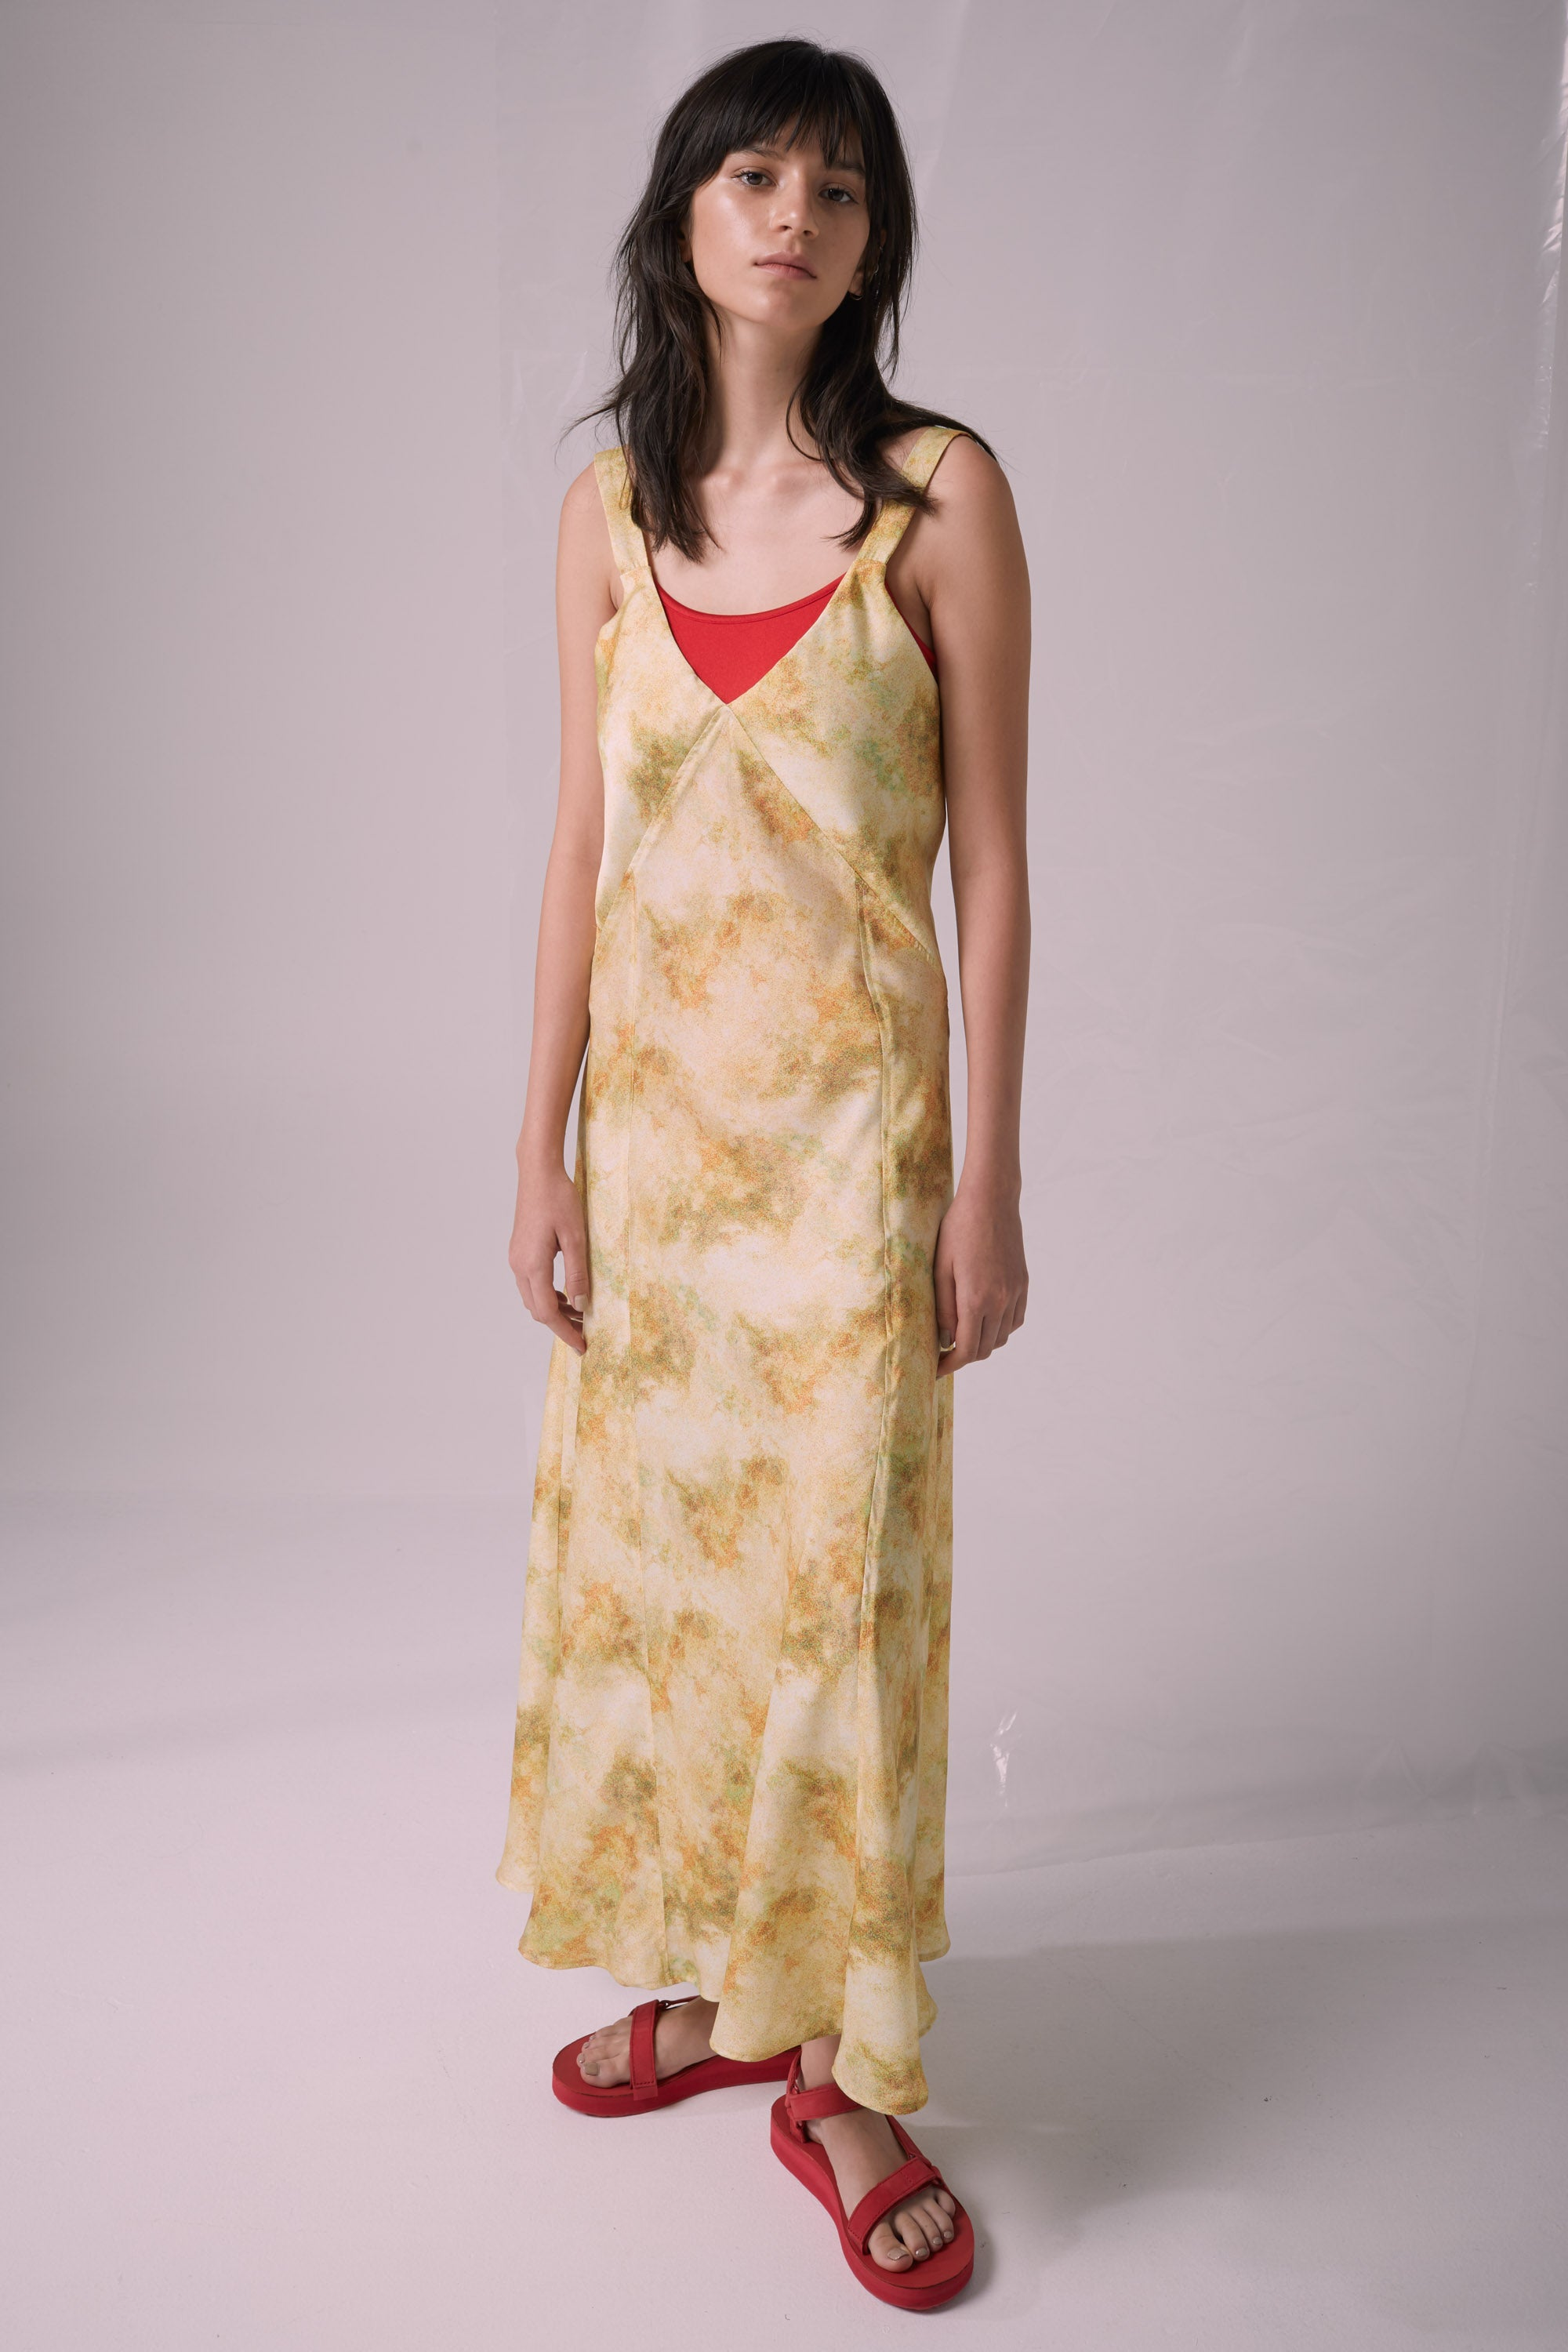 Ricochet NZ Fashion Designer Clothing Boutique SS19  Made in NZ Atmosphere Dress Fuzzy Cloud Print